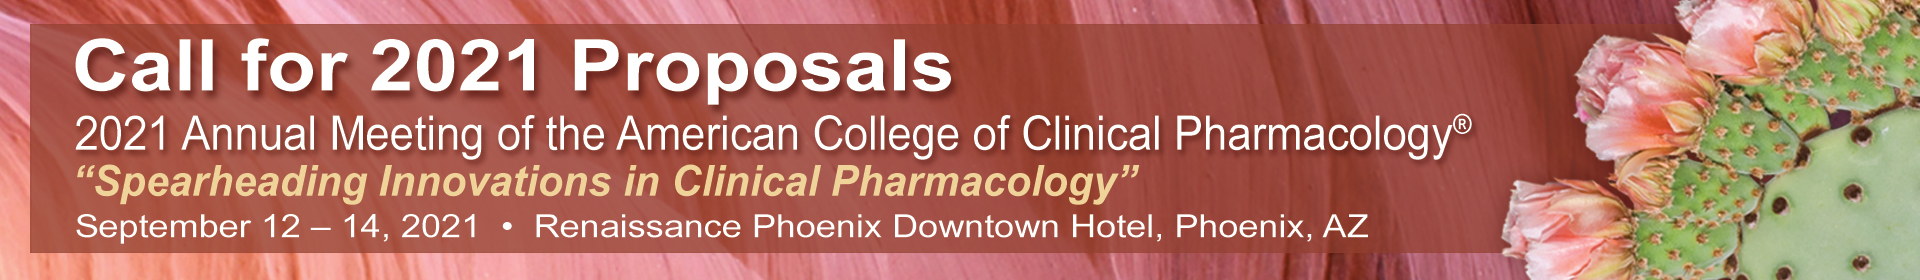 2021 Call for Proposals | American College of Clinical Pharmacology Annual Meeting | September 12 - 14, 2021